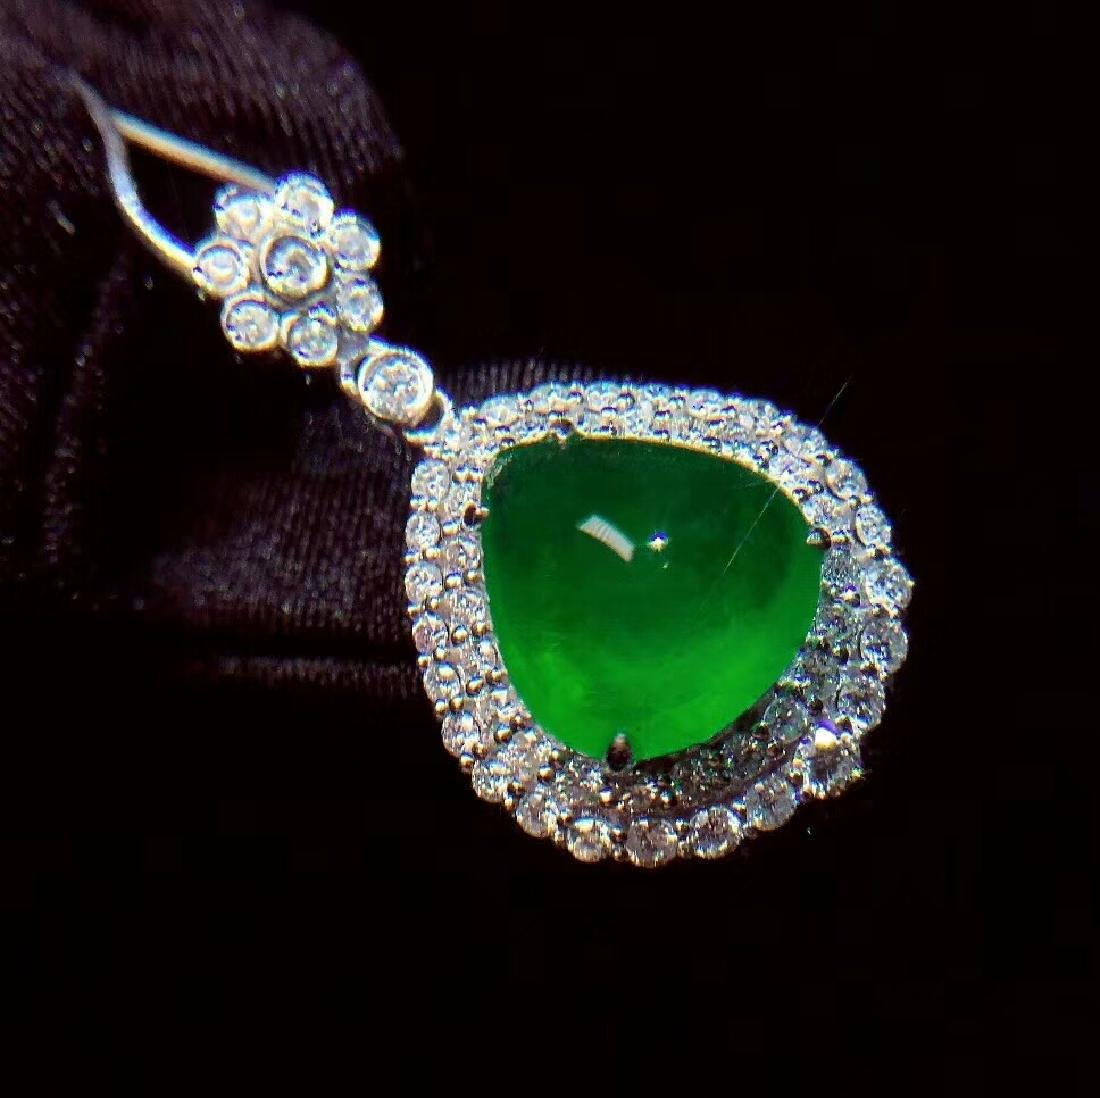 6.1ct Emerald Pendant in 18kt White Gold - 2